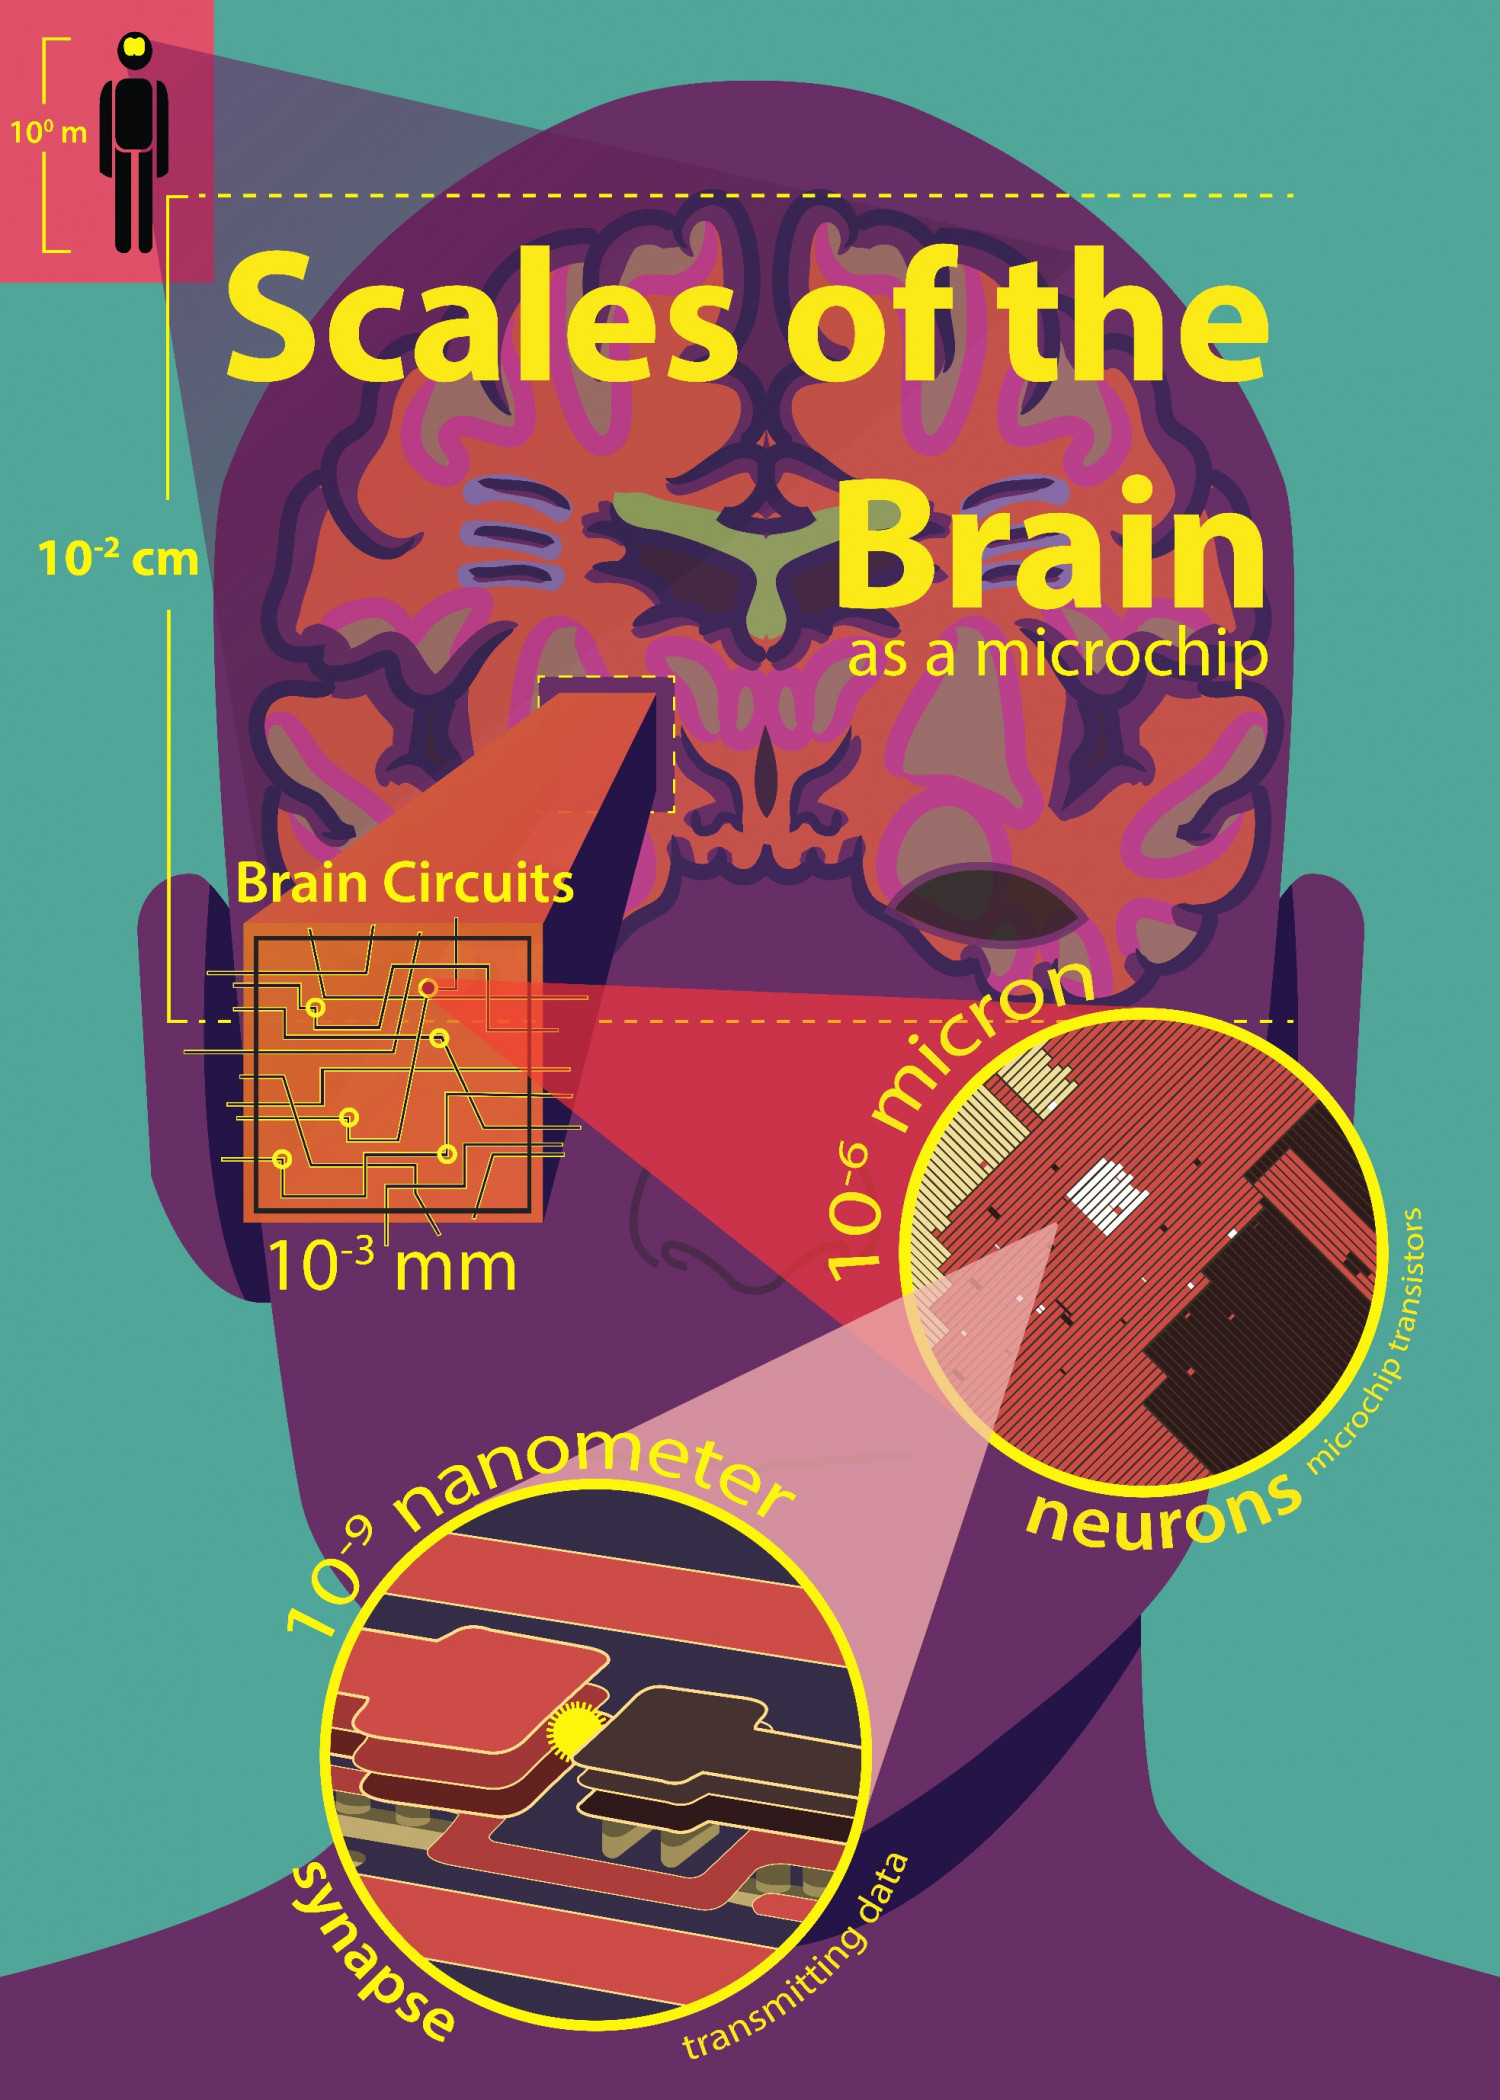 Scales of the Brain Infographic